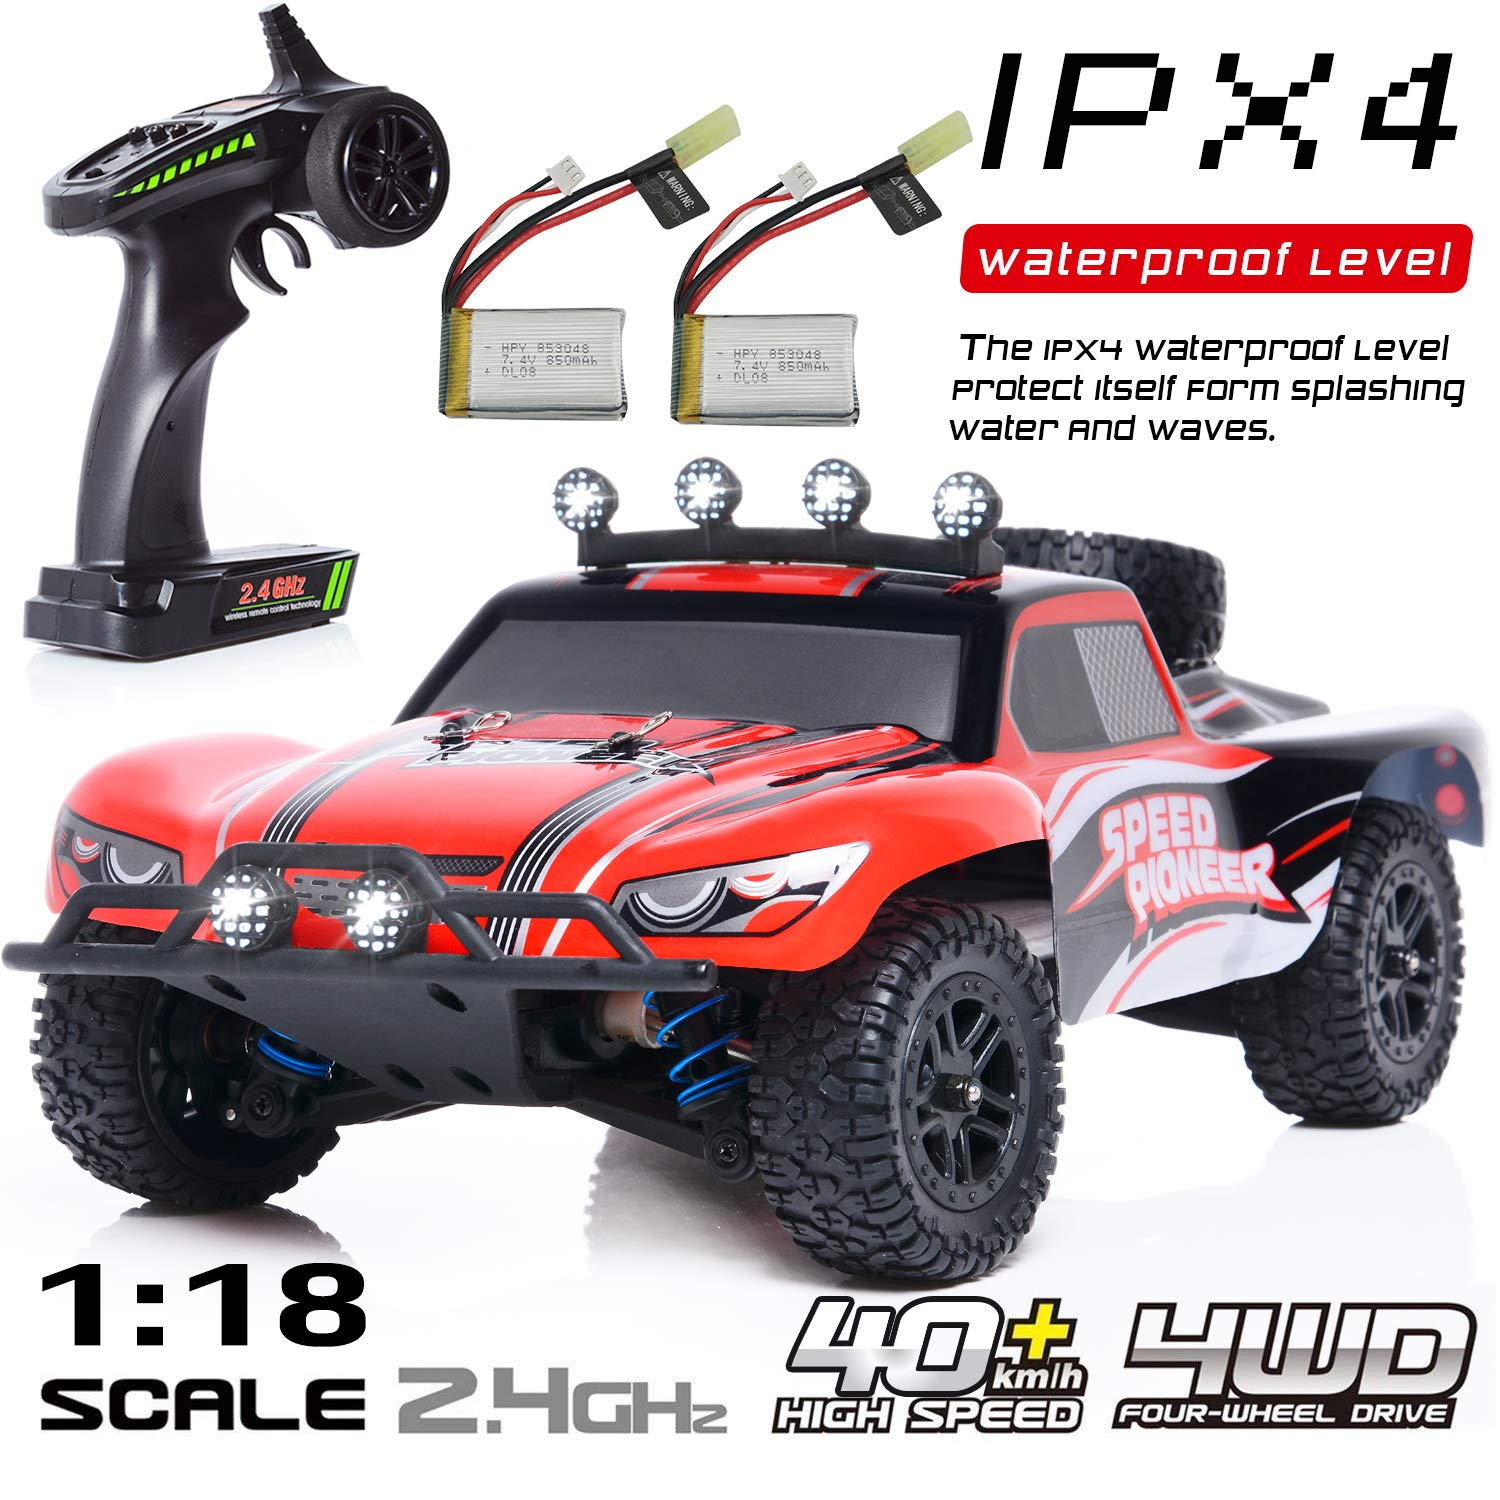 Remote Control Cars >> Exercise N Play Rc Car Remote Control Car Terrain Rc Cars Electric Remote Control Off Road Monster Truck 1 18 Scale 2 4ghz Radio 4wd Fast 30 Mph